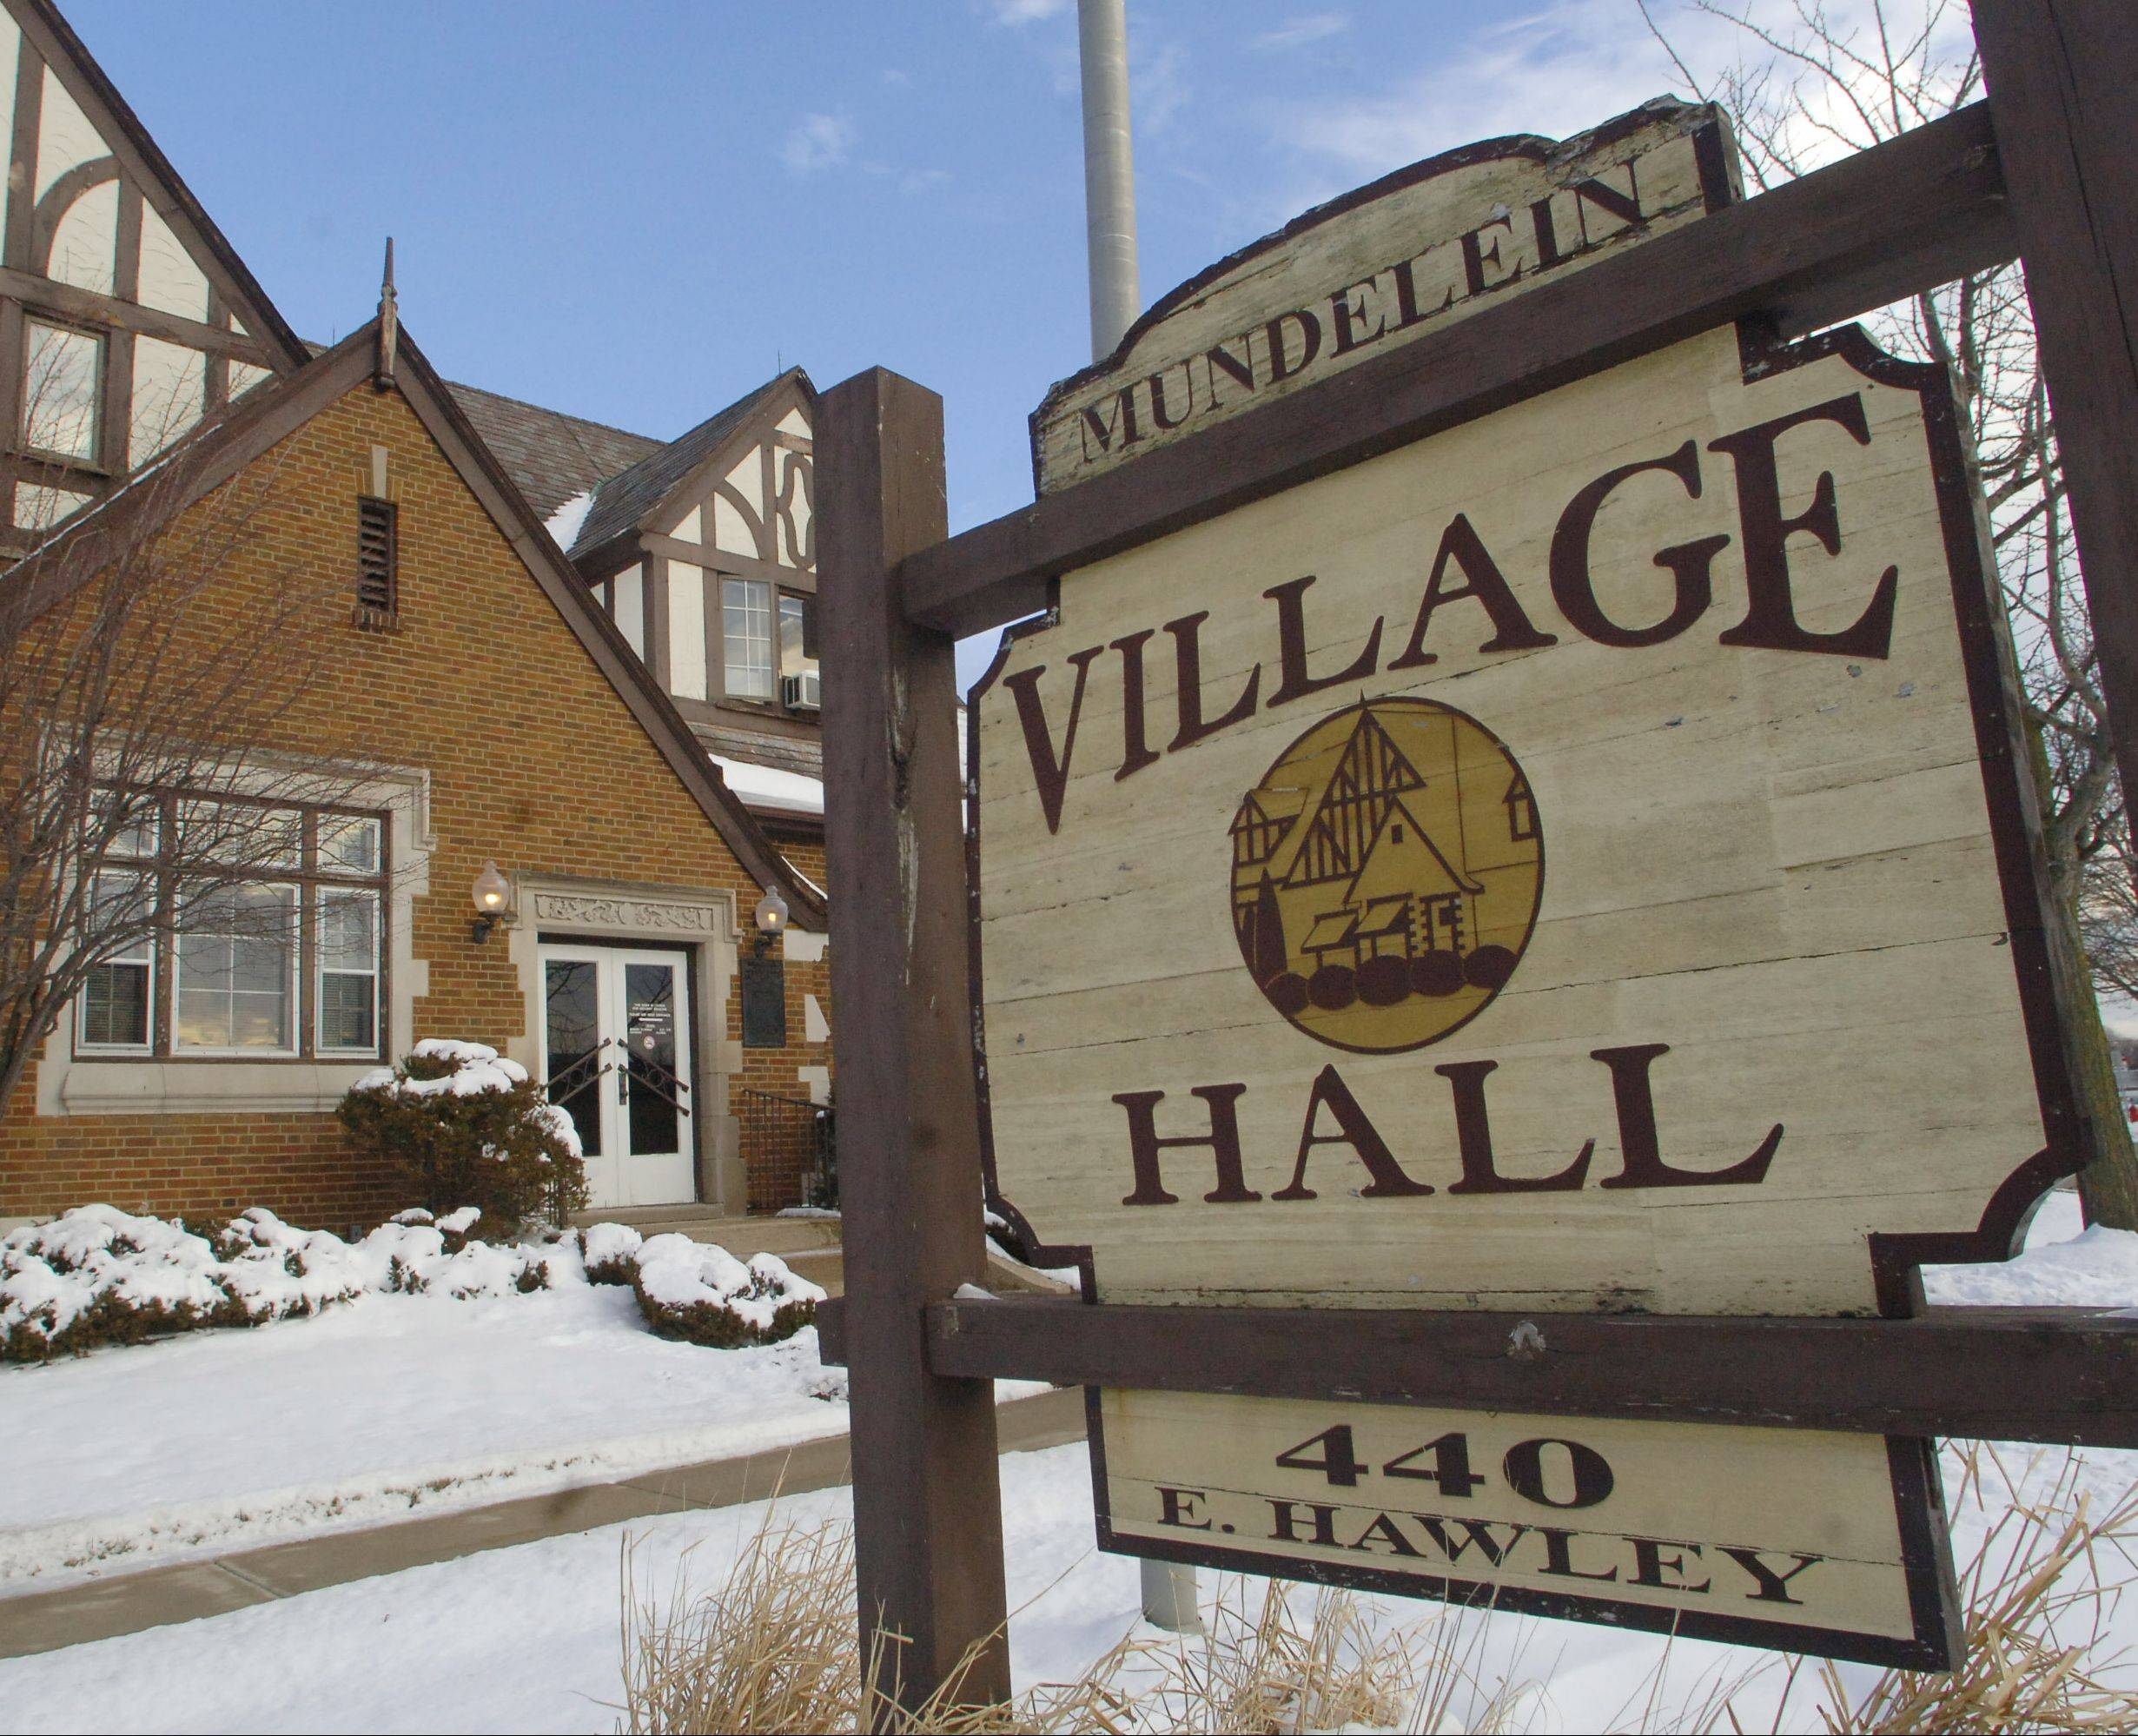 Mundelein officals think a PR push could help the village